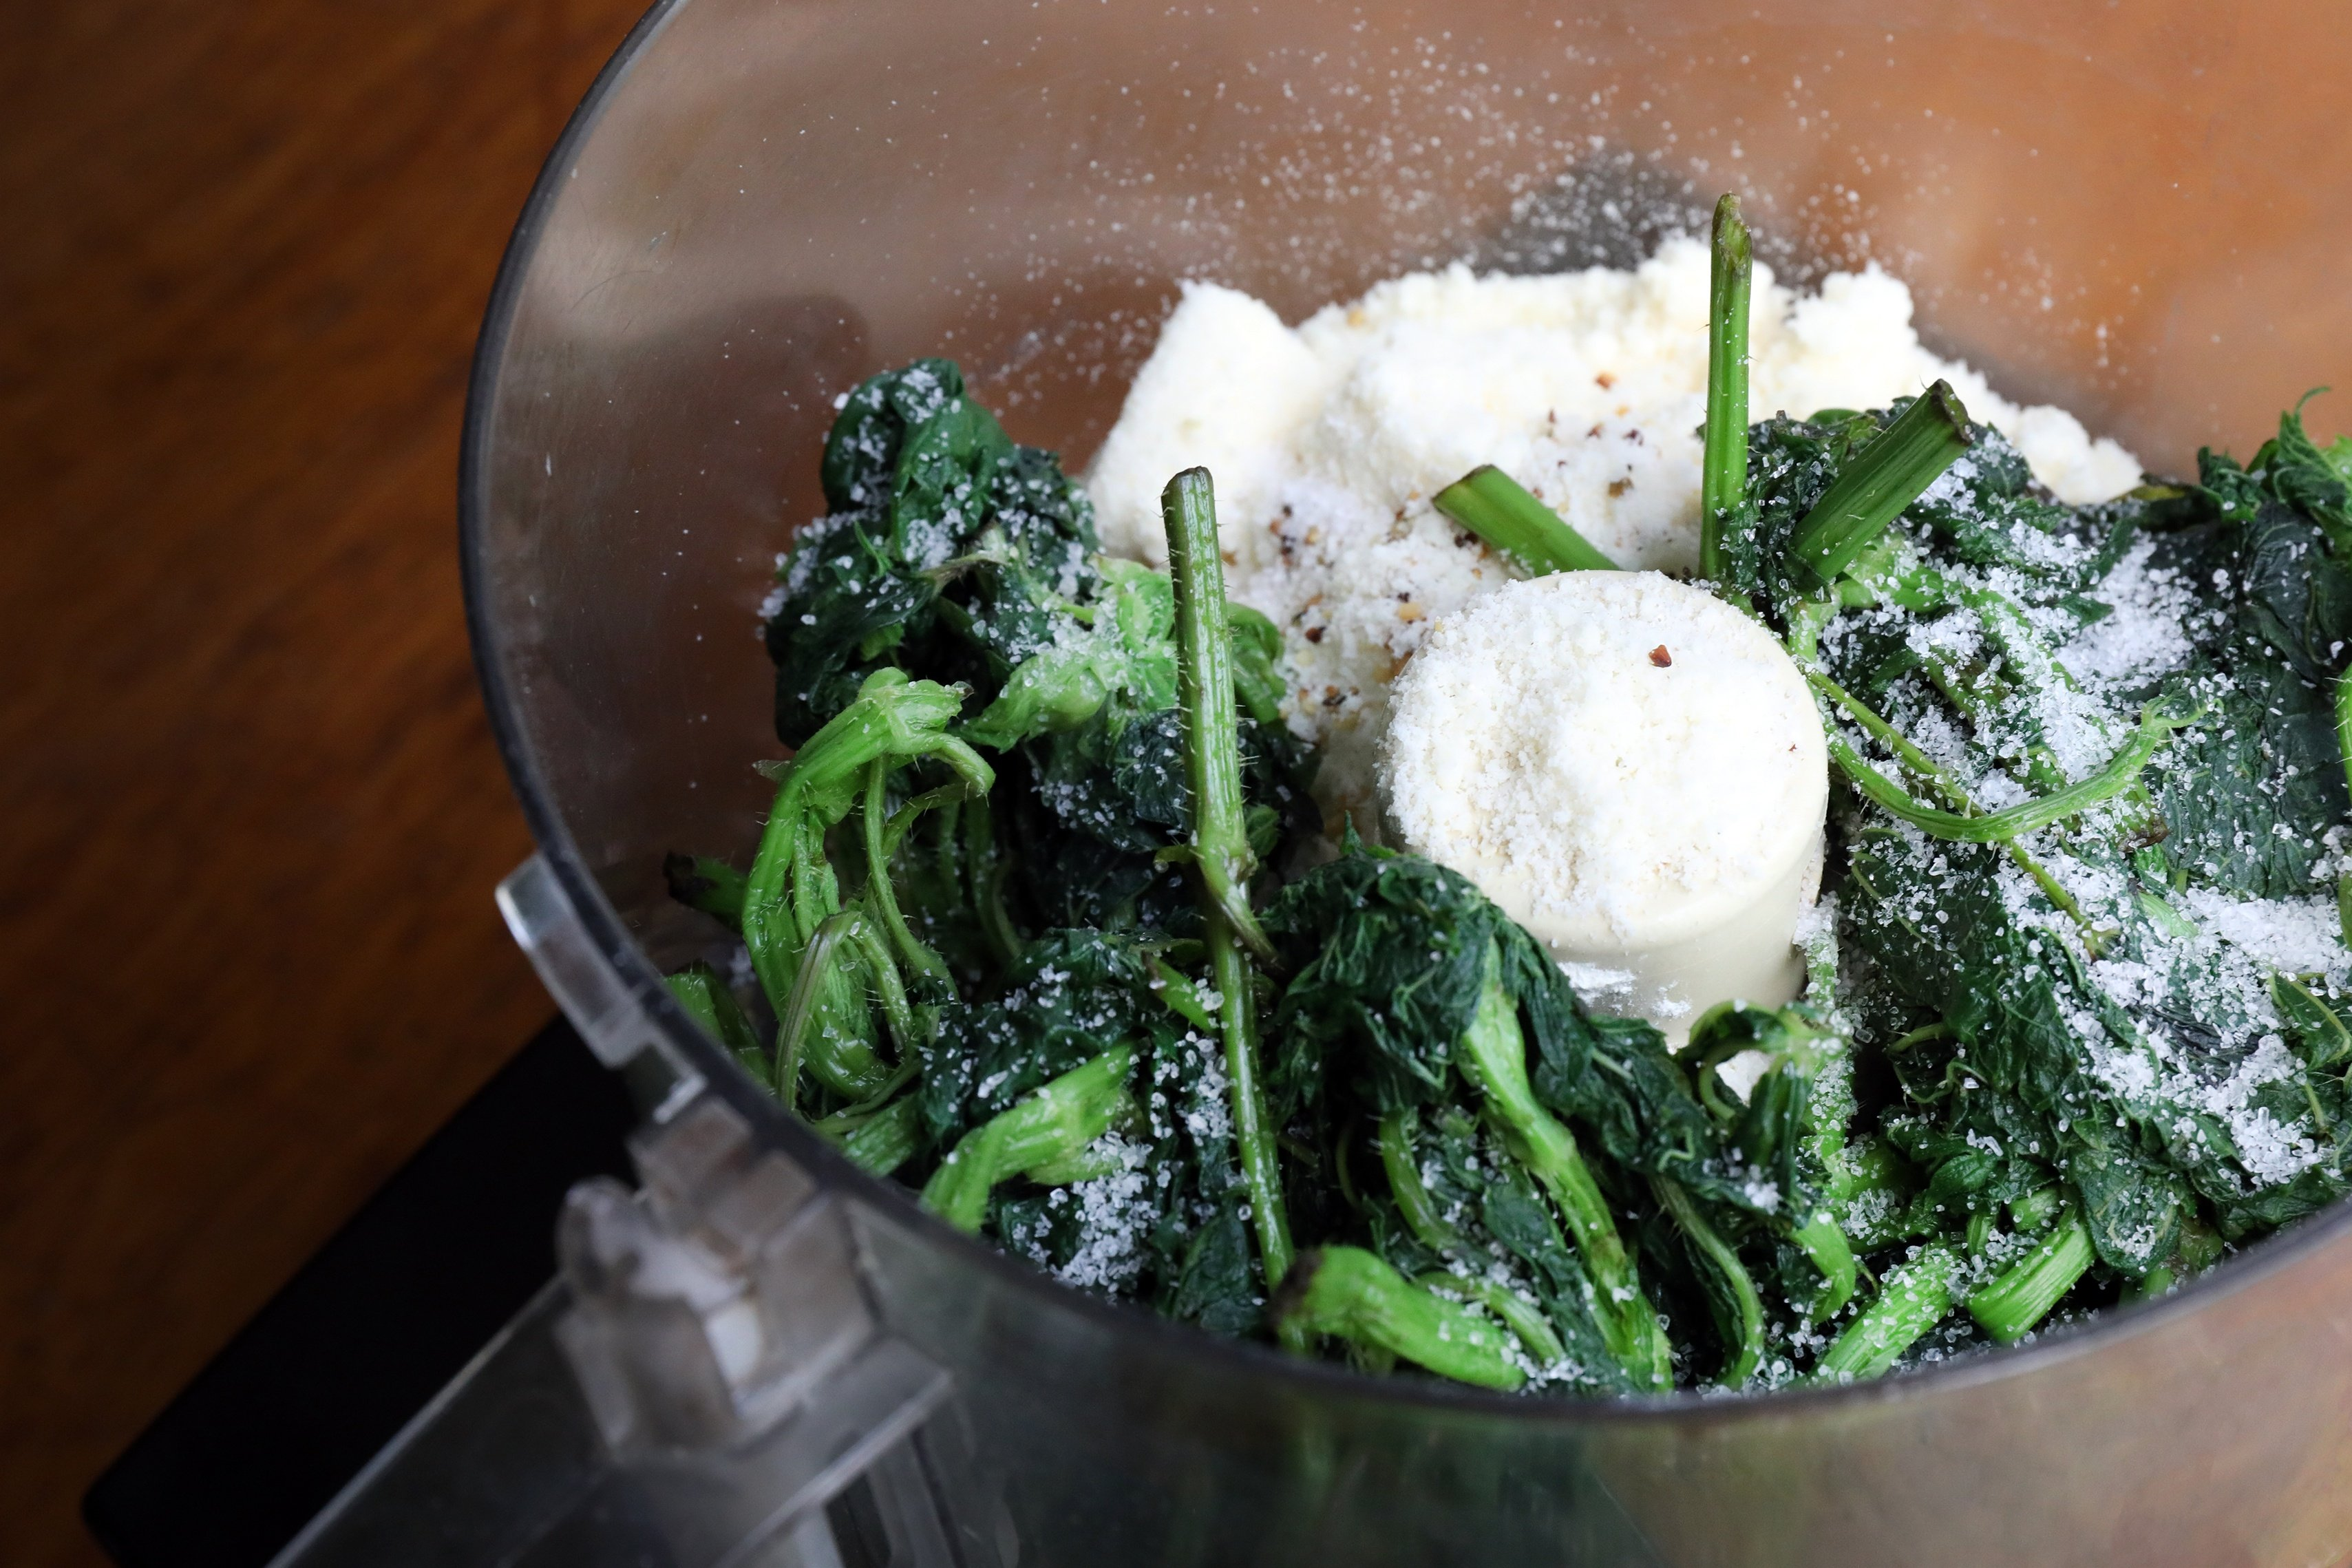 Blanched nettle leaves and other pesto ingredients in a food processor